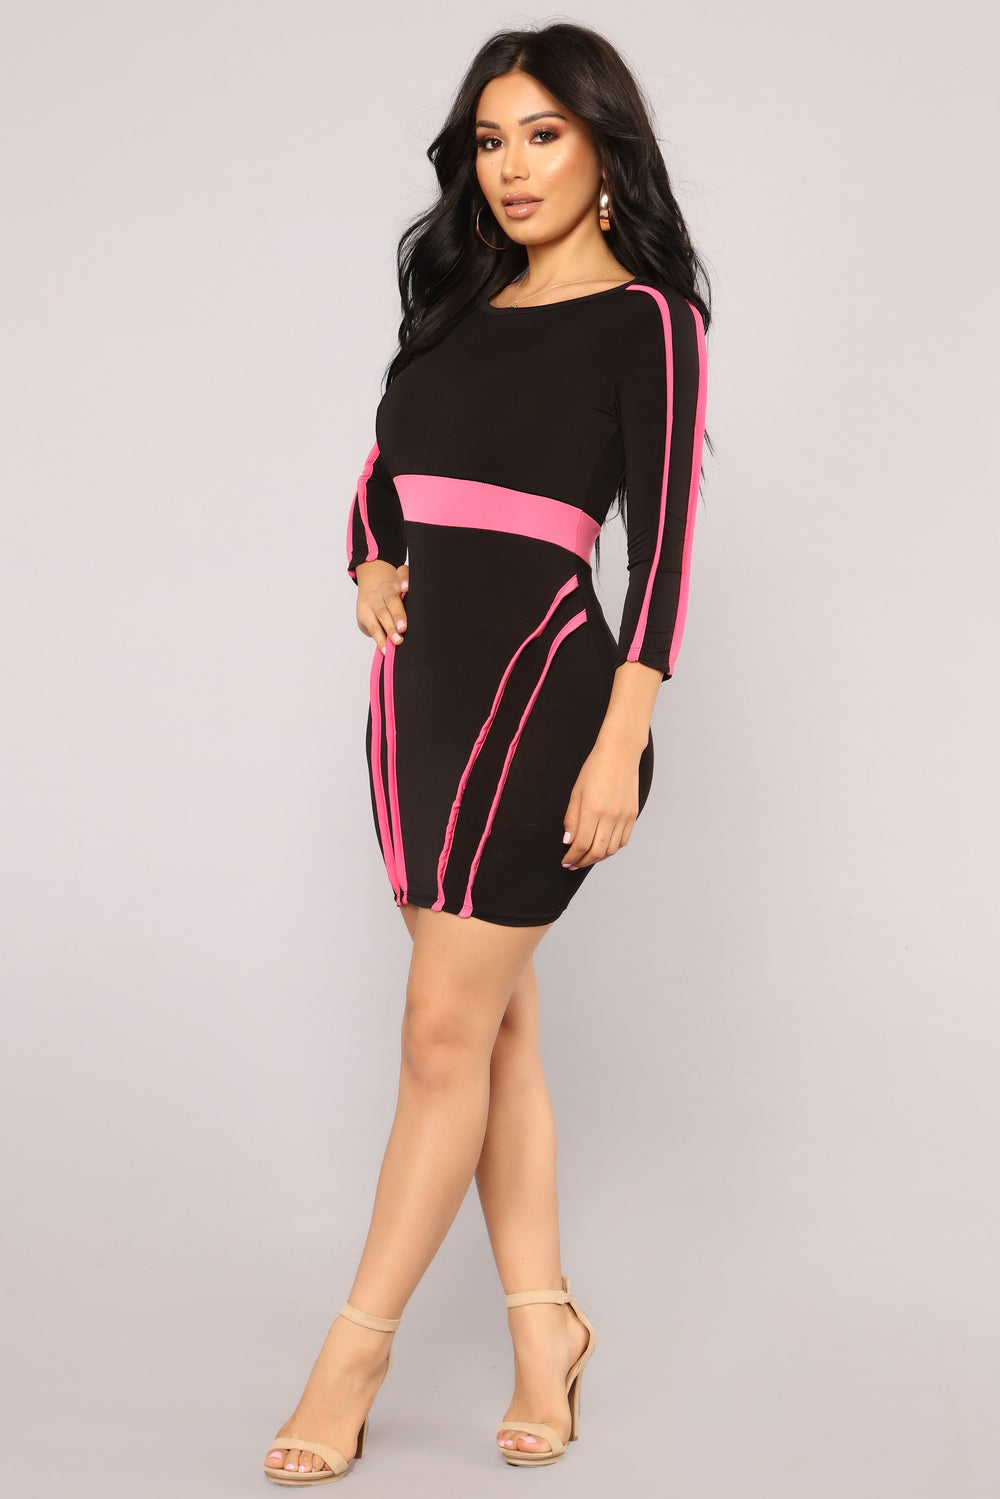 Born To Love You Mini Dress - Black